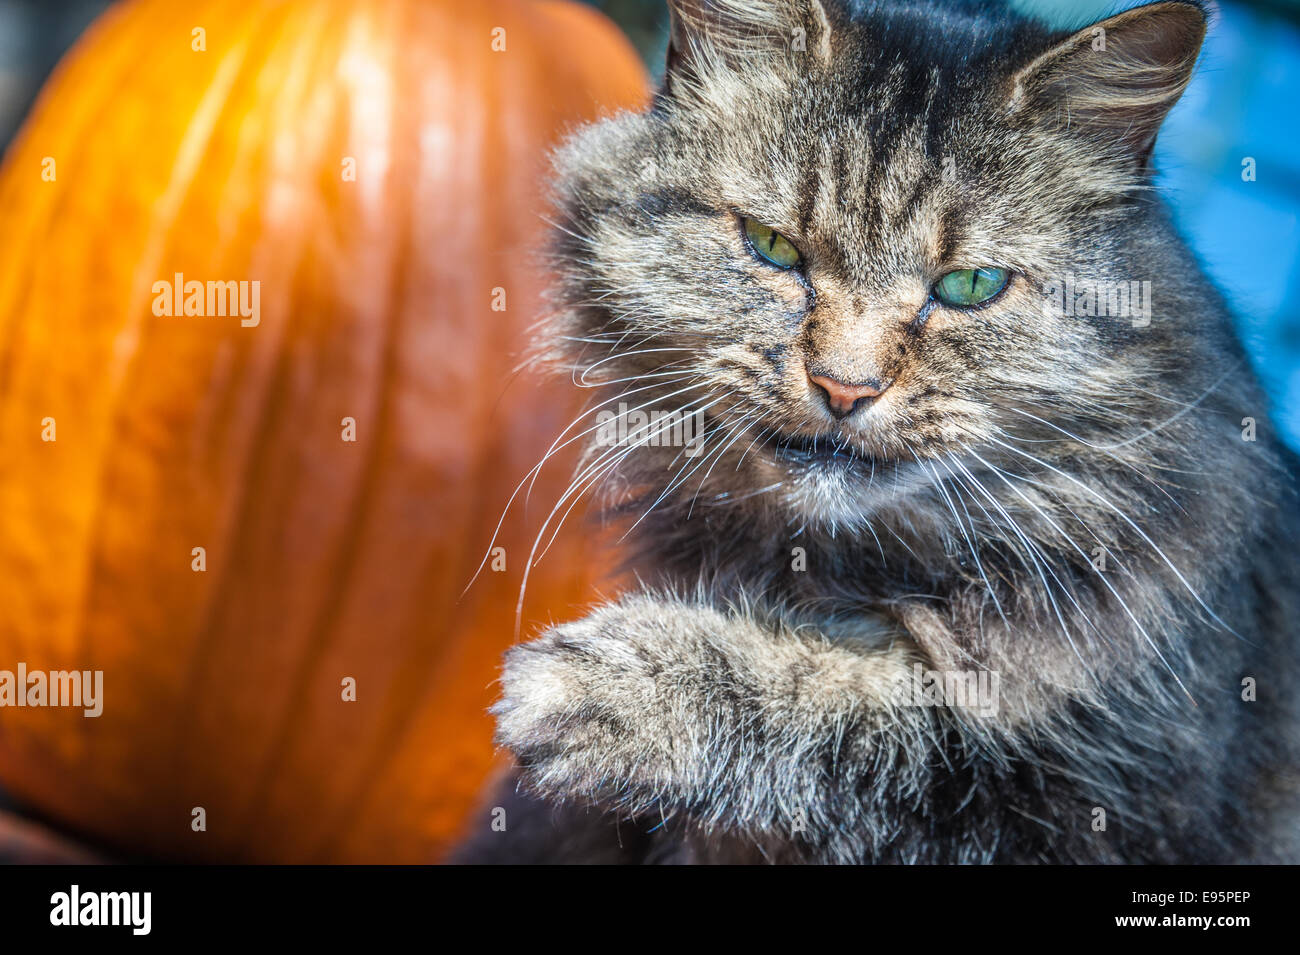 Angry looking green-eyed cat licks her lips and stares intently from her perch in front of a sunlit pumpkin. - Stock Image